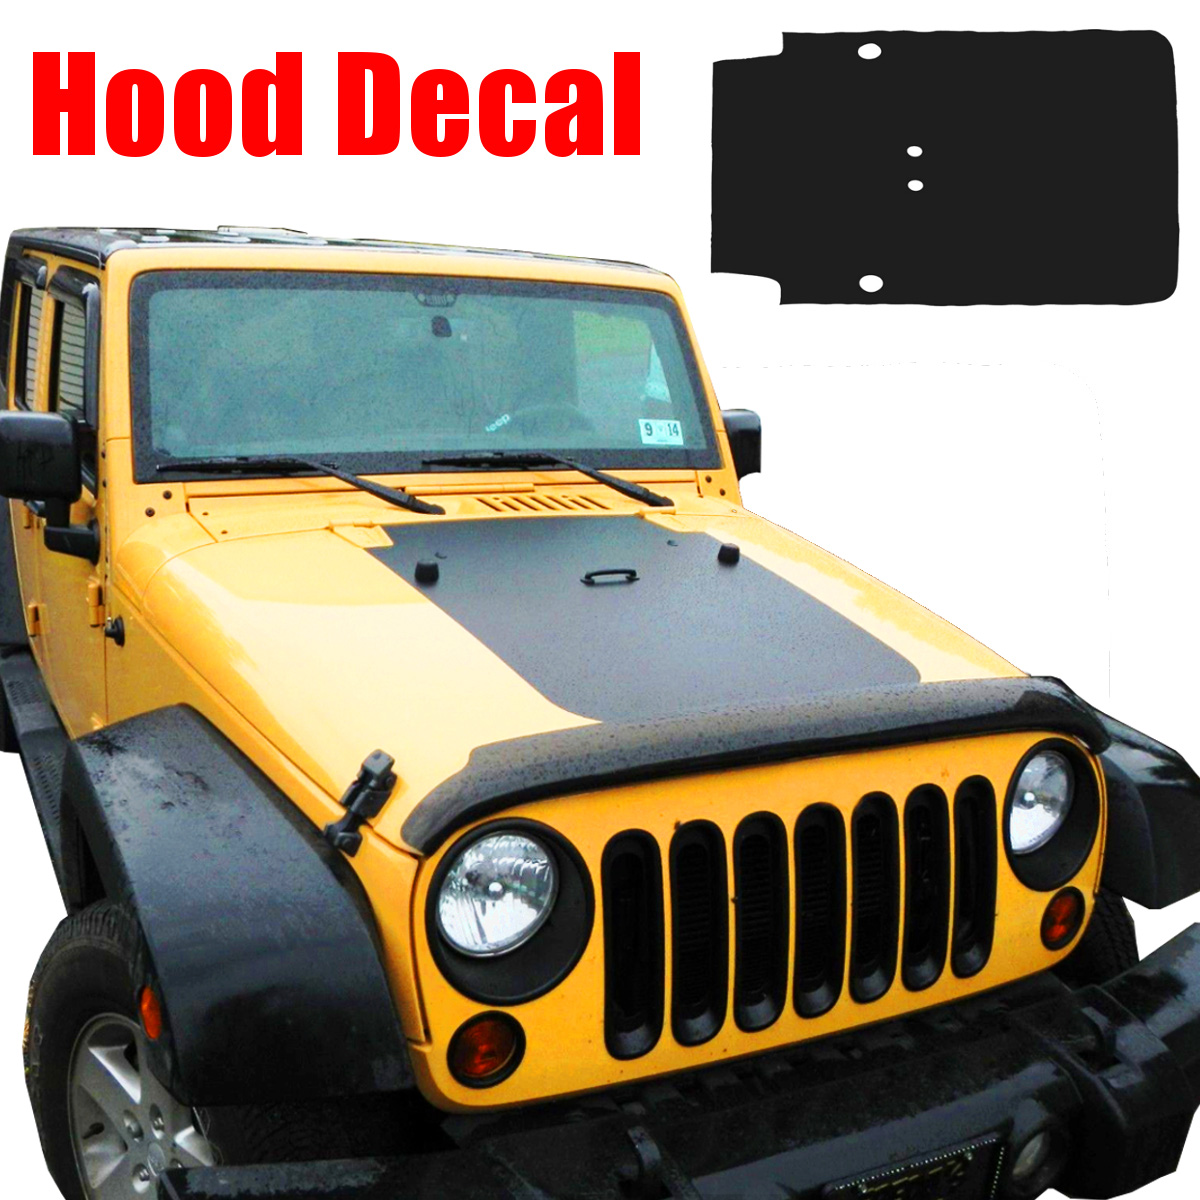 Car hood decal for jeep for wrangler jk 07 18 matte black hood sticker waterproof car auto front body hood sticker 83x45cm